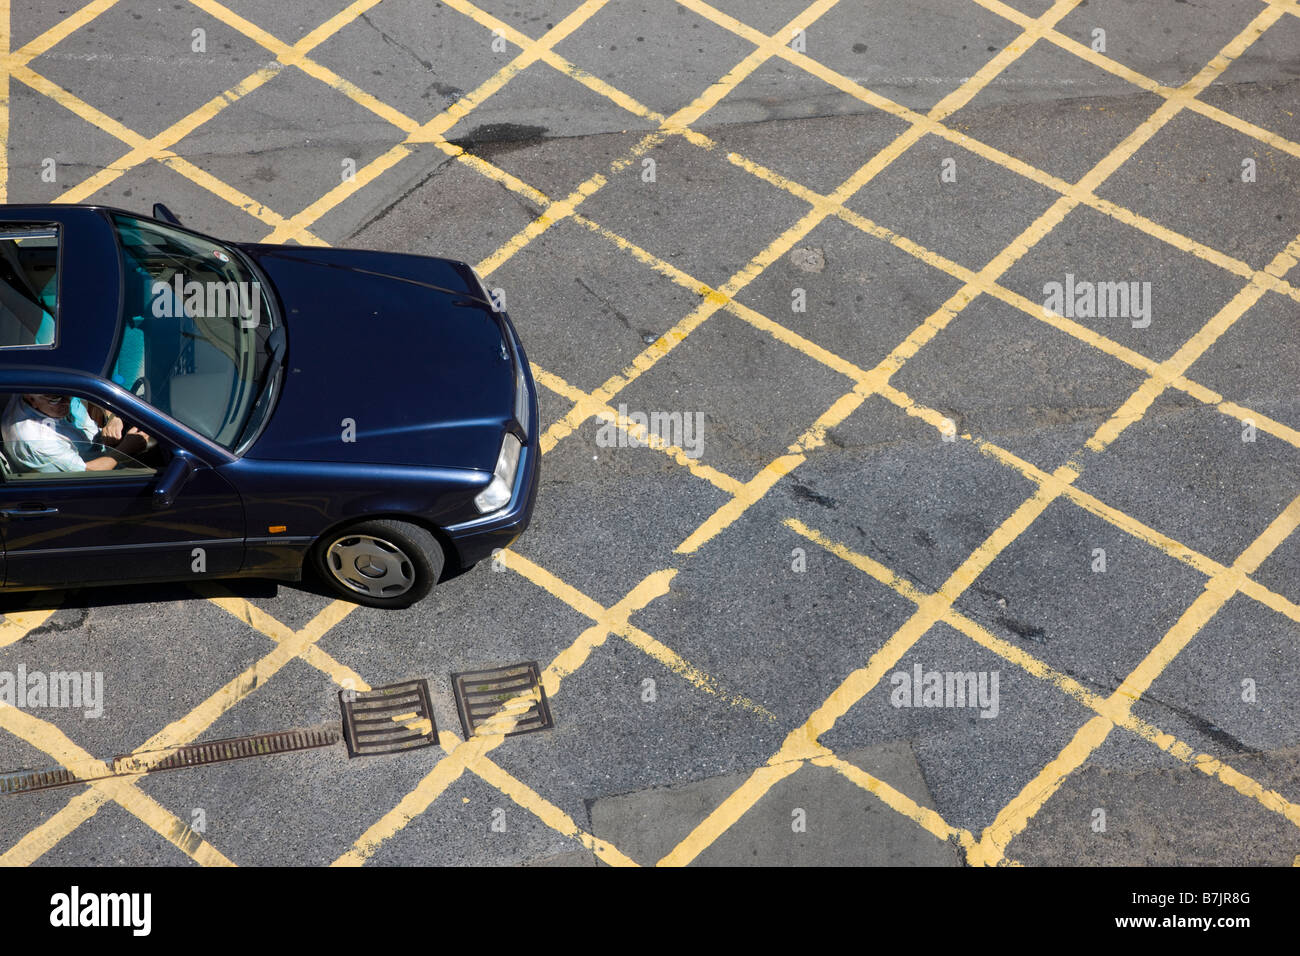 Car entering a road box junction - Stock Image